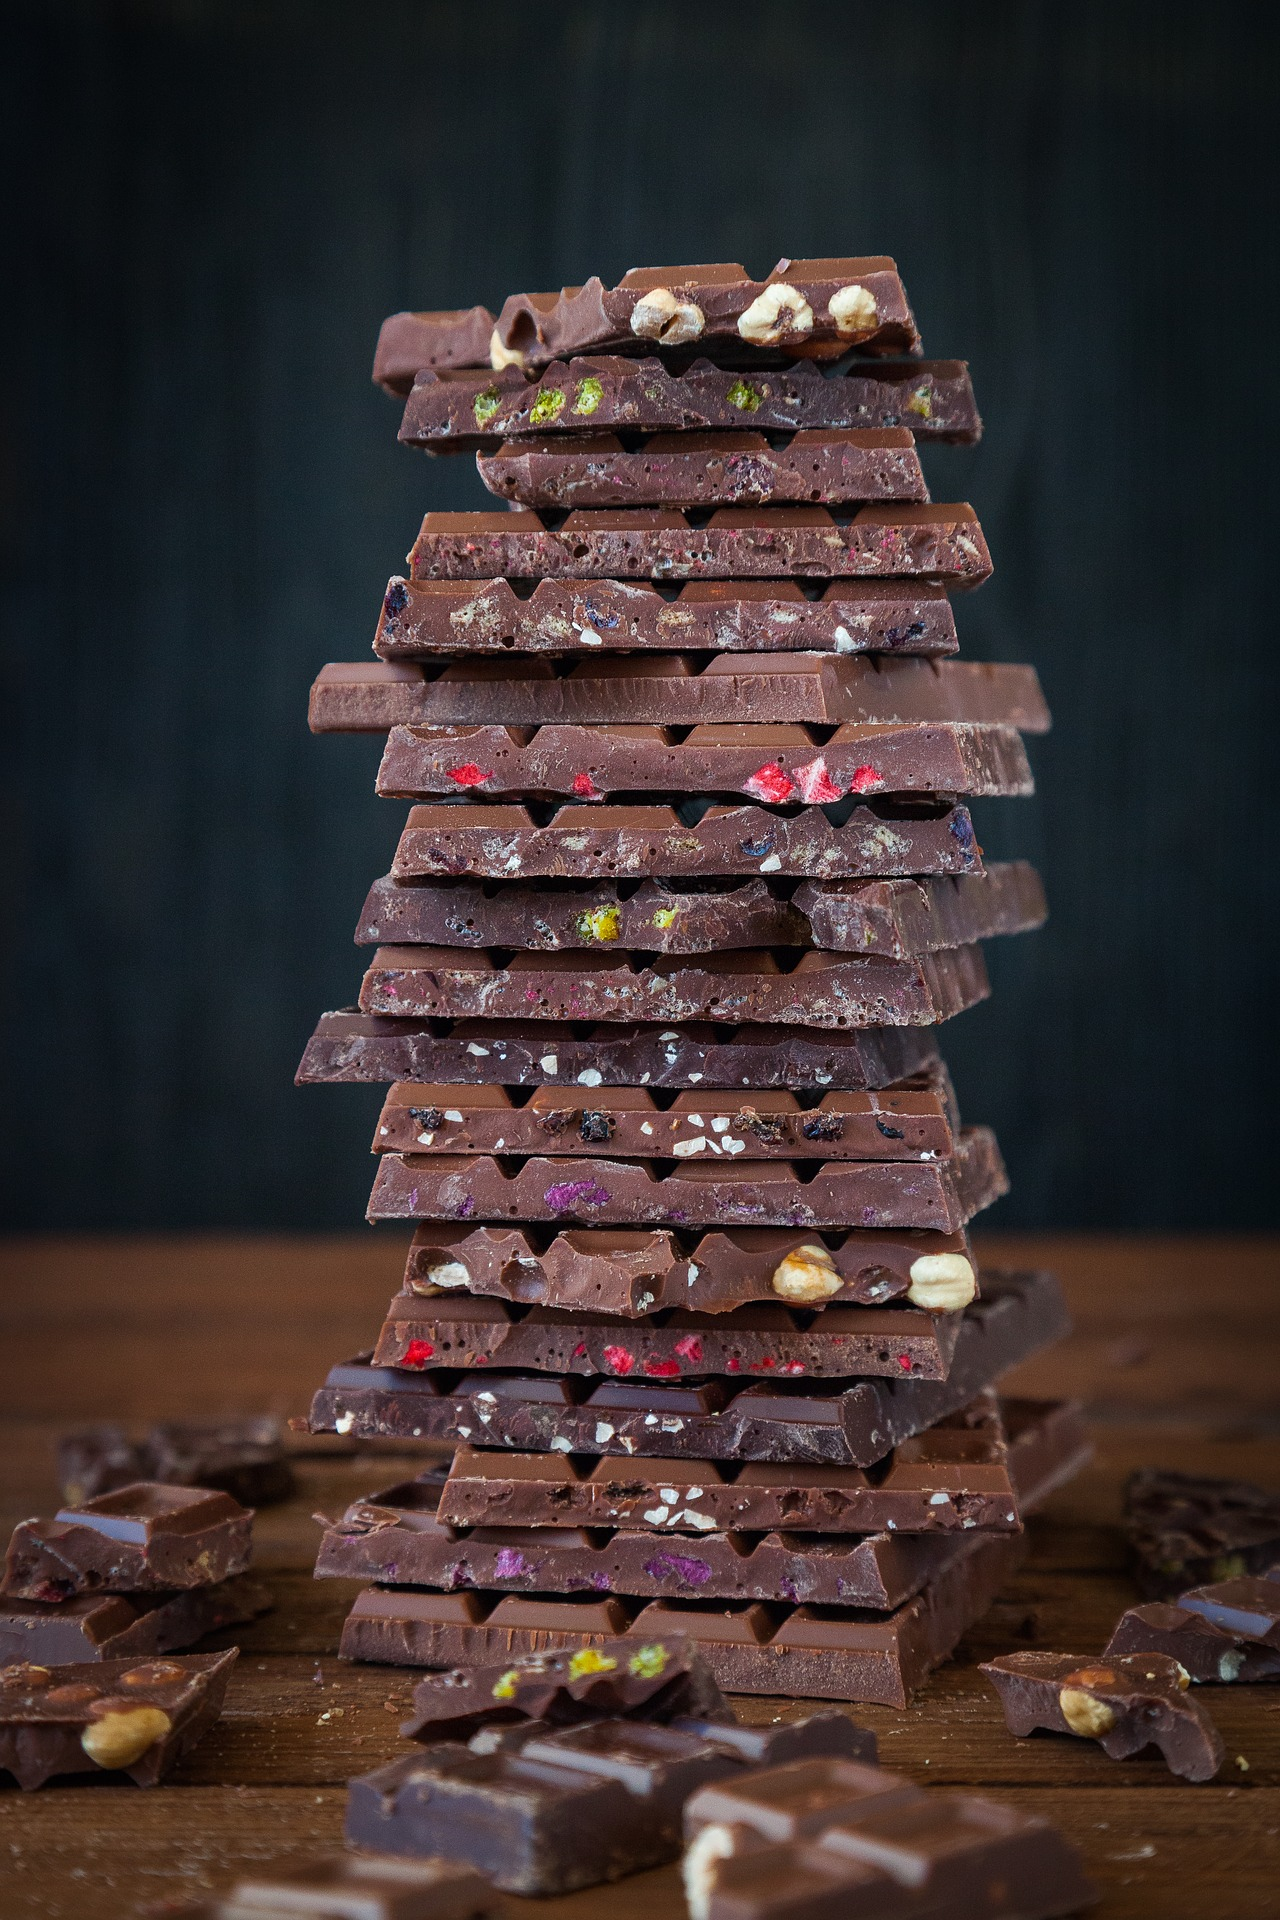 tall pile of chocolate bars . . . to eat in moderation